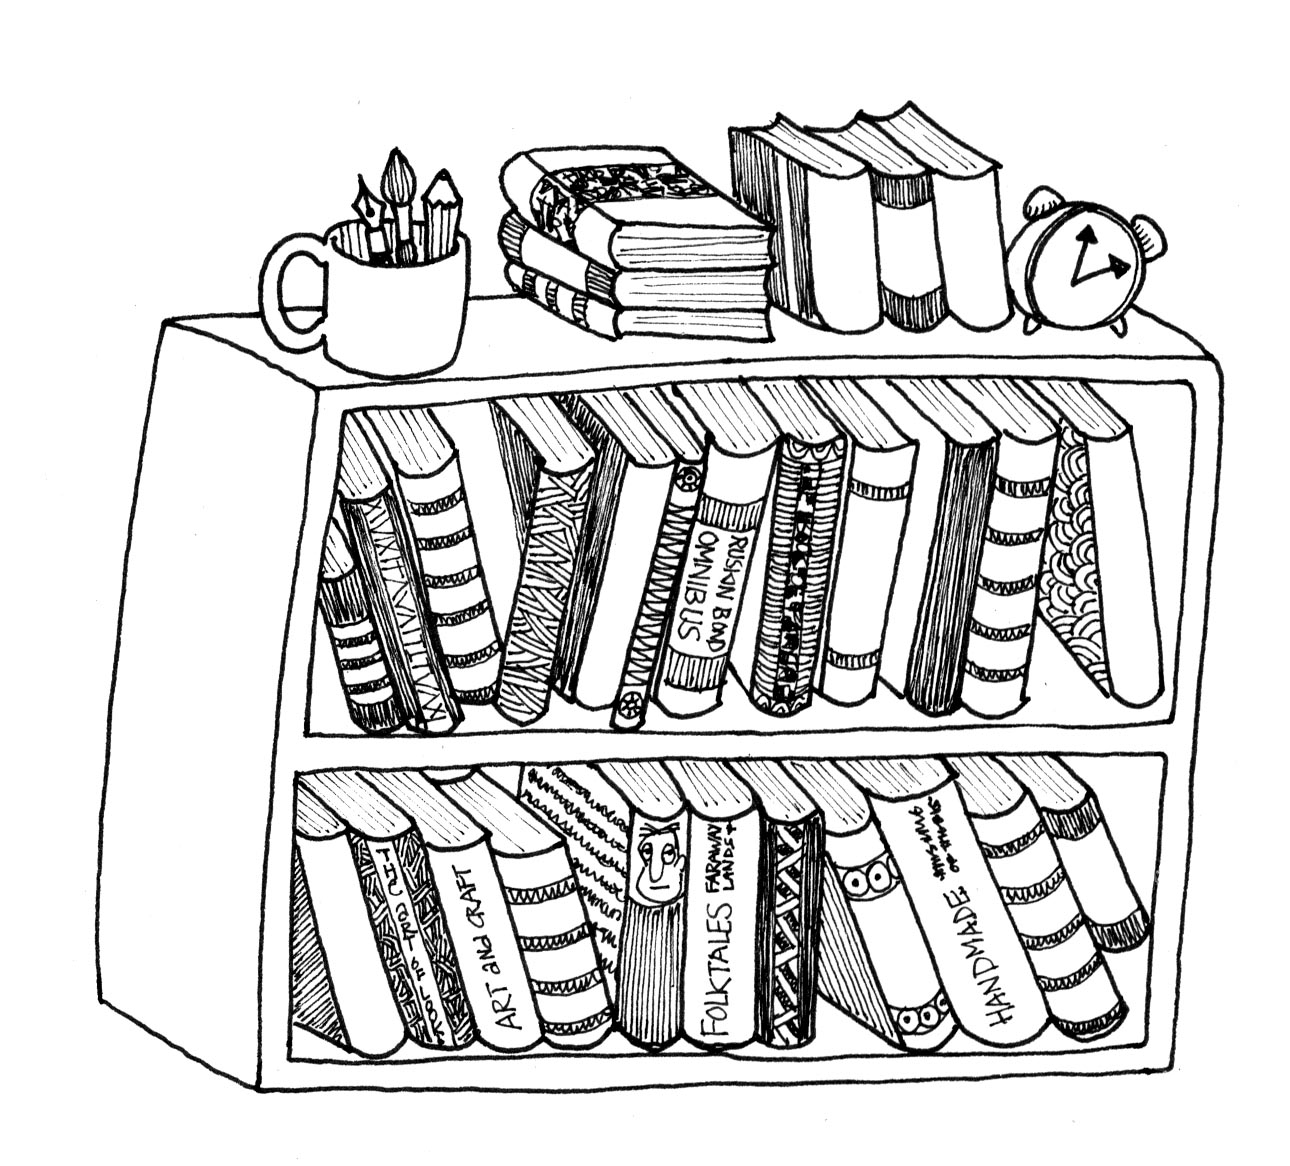 Drawn bookcase #3